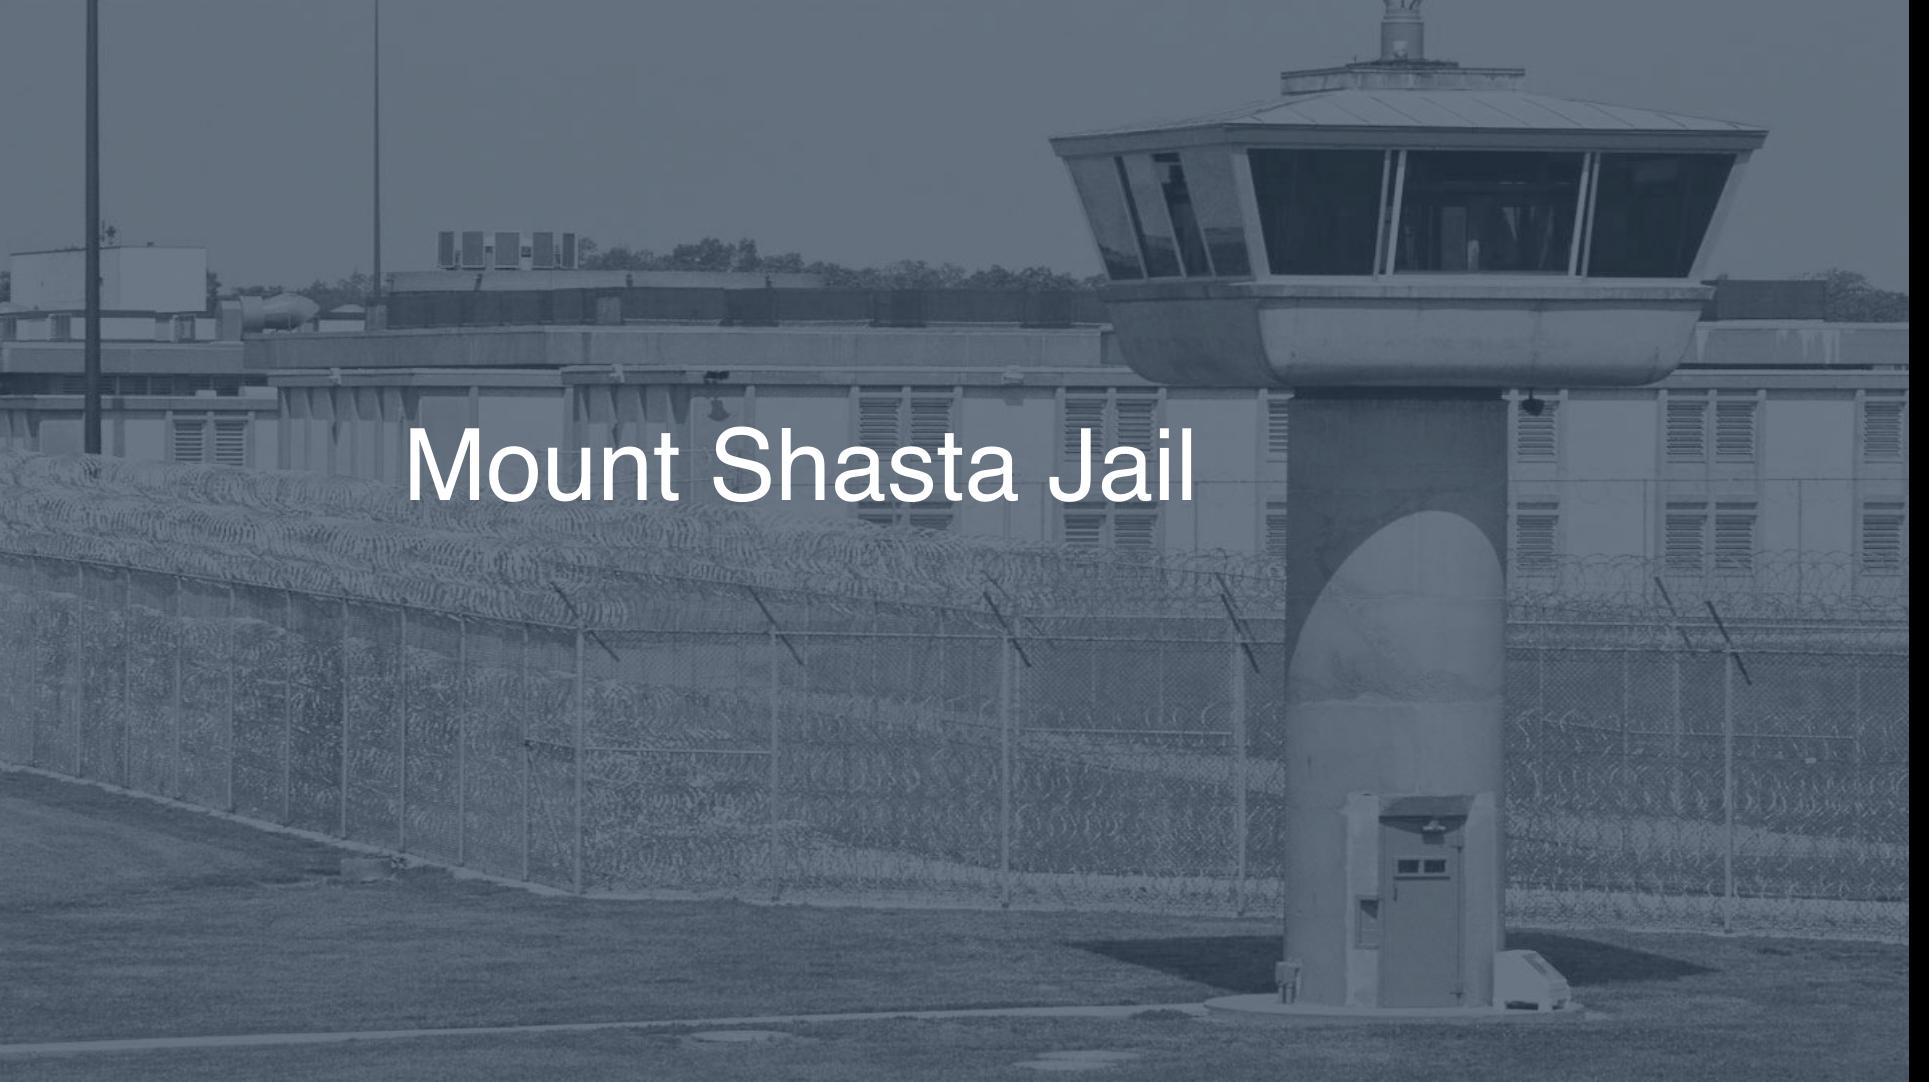 Mount Shasta Jail correctional facility picture